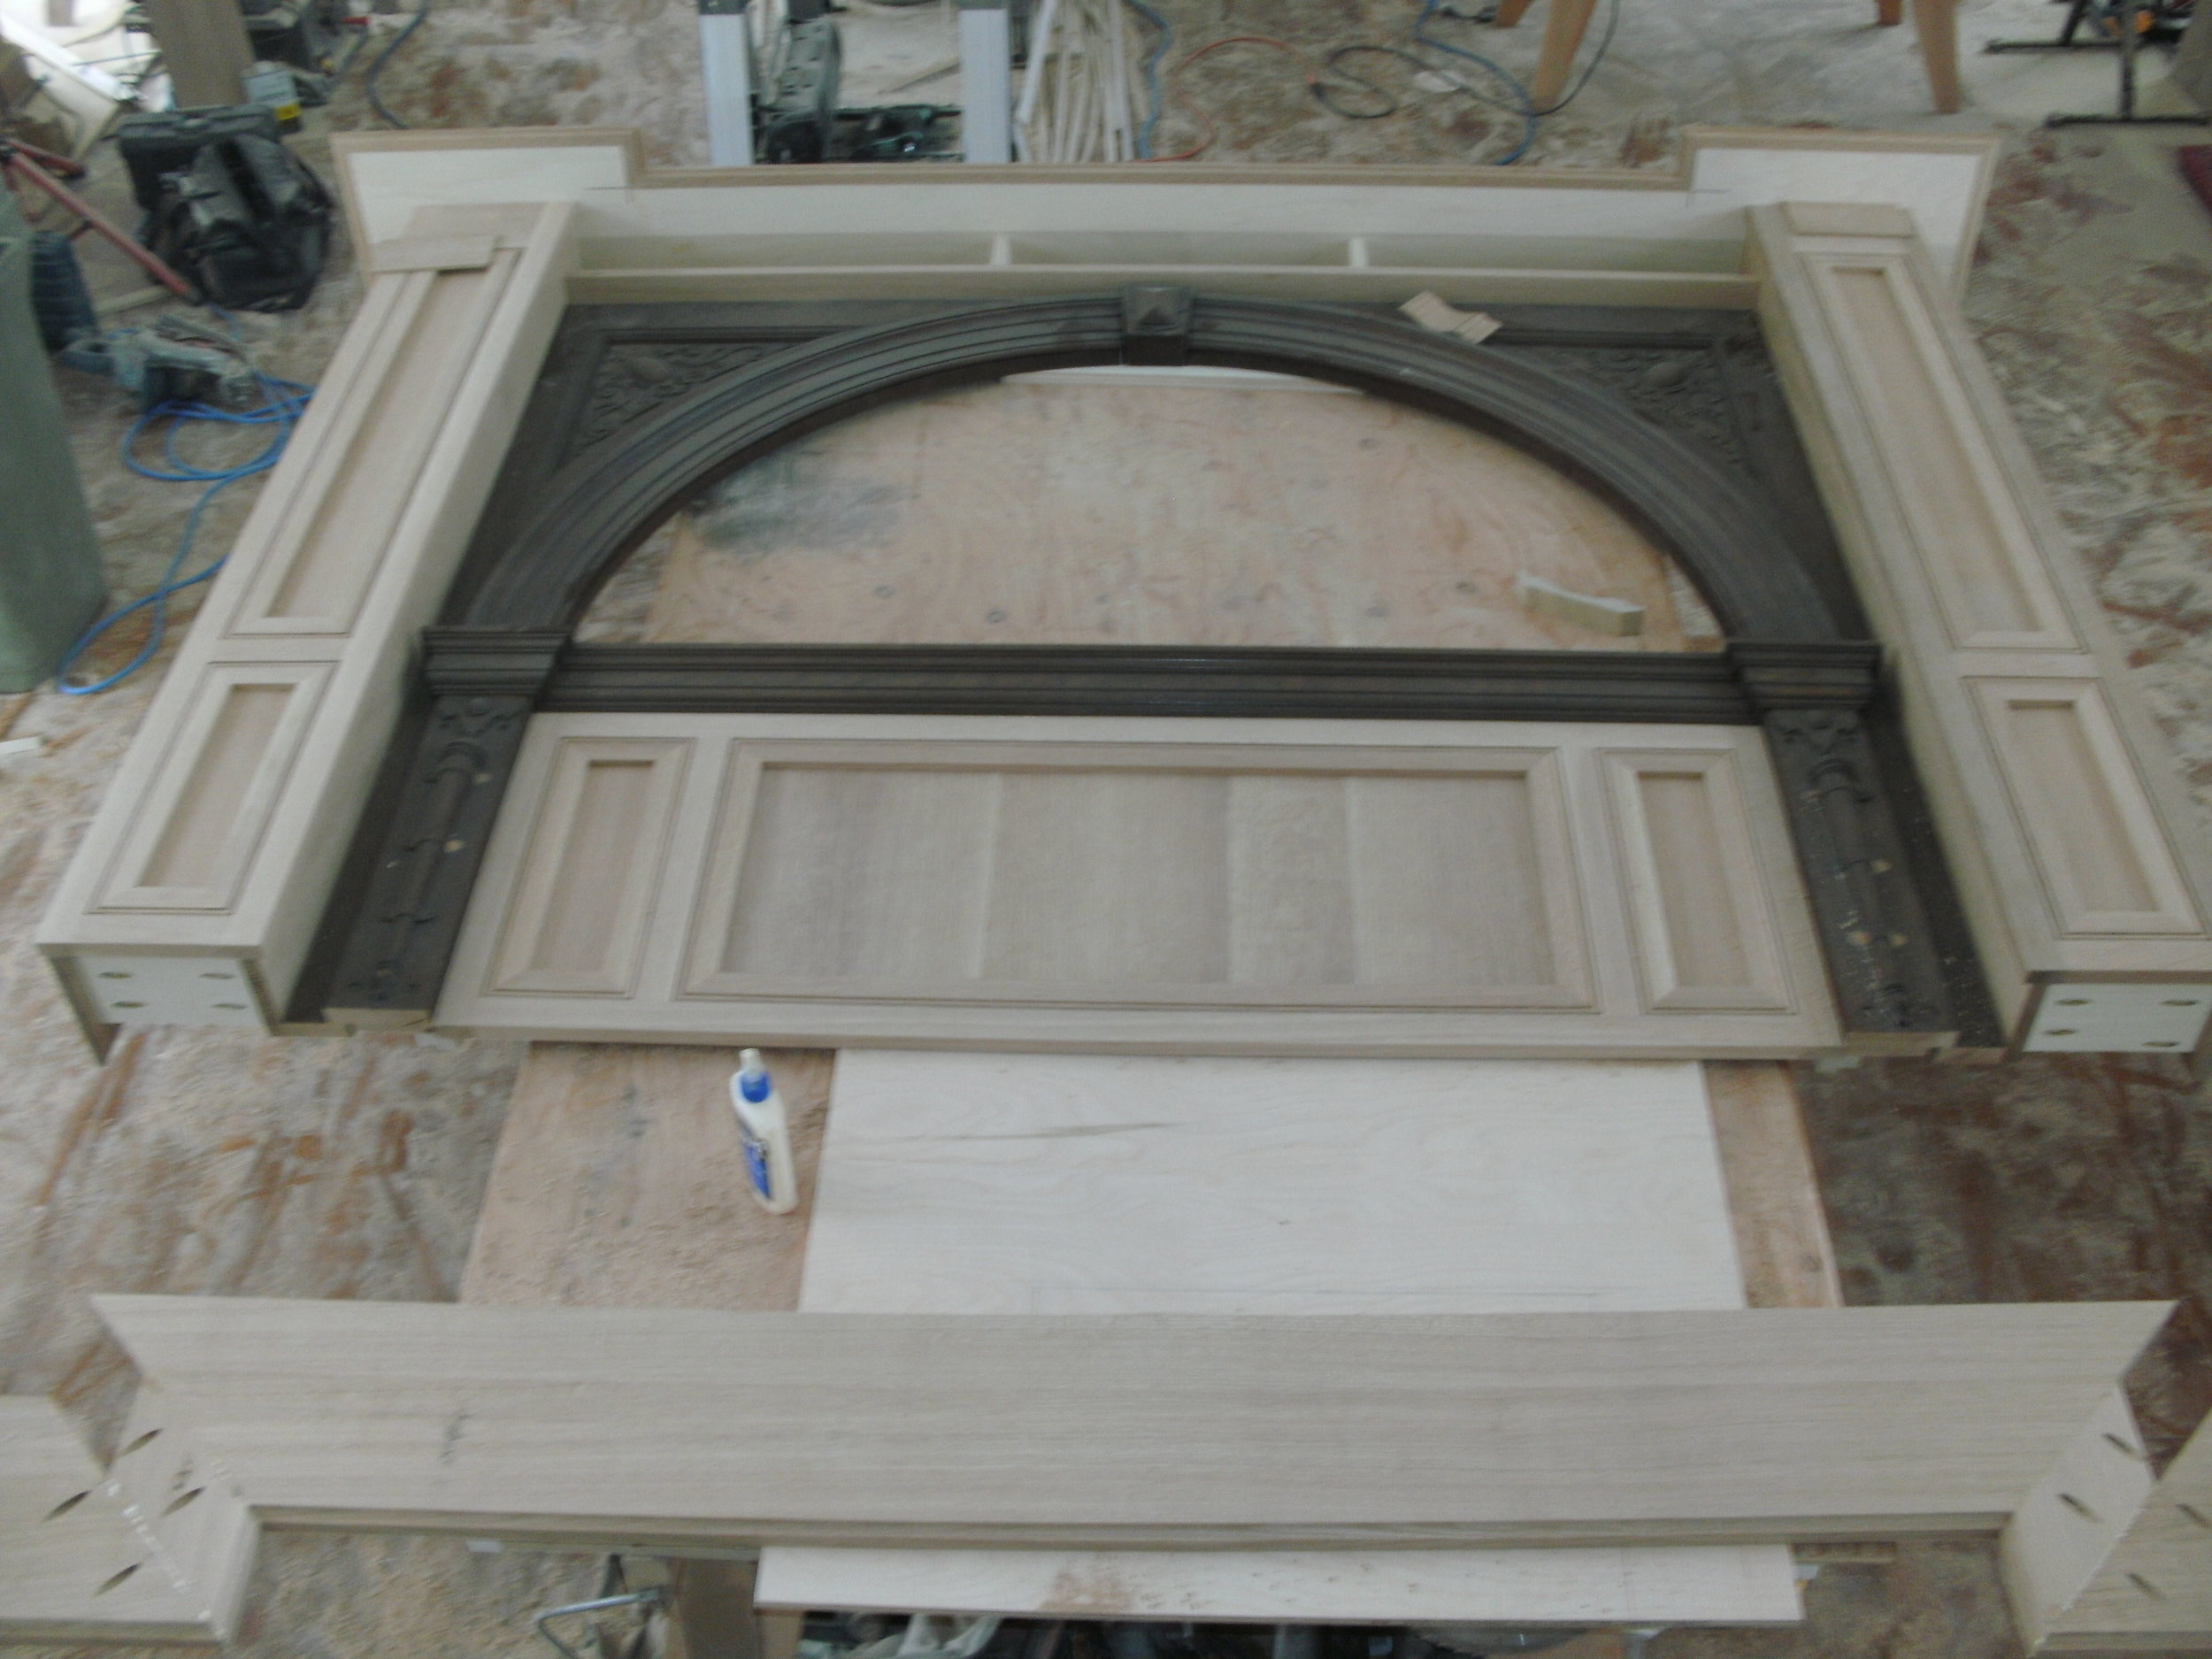 Mantel Portion of the Fireplace Surround